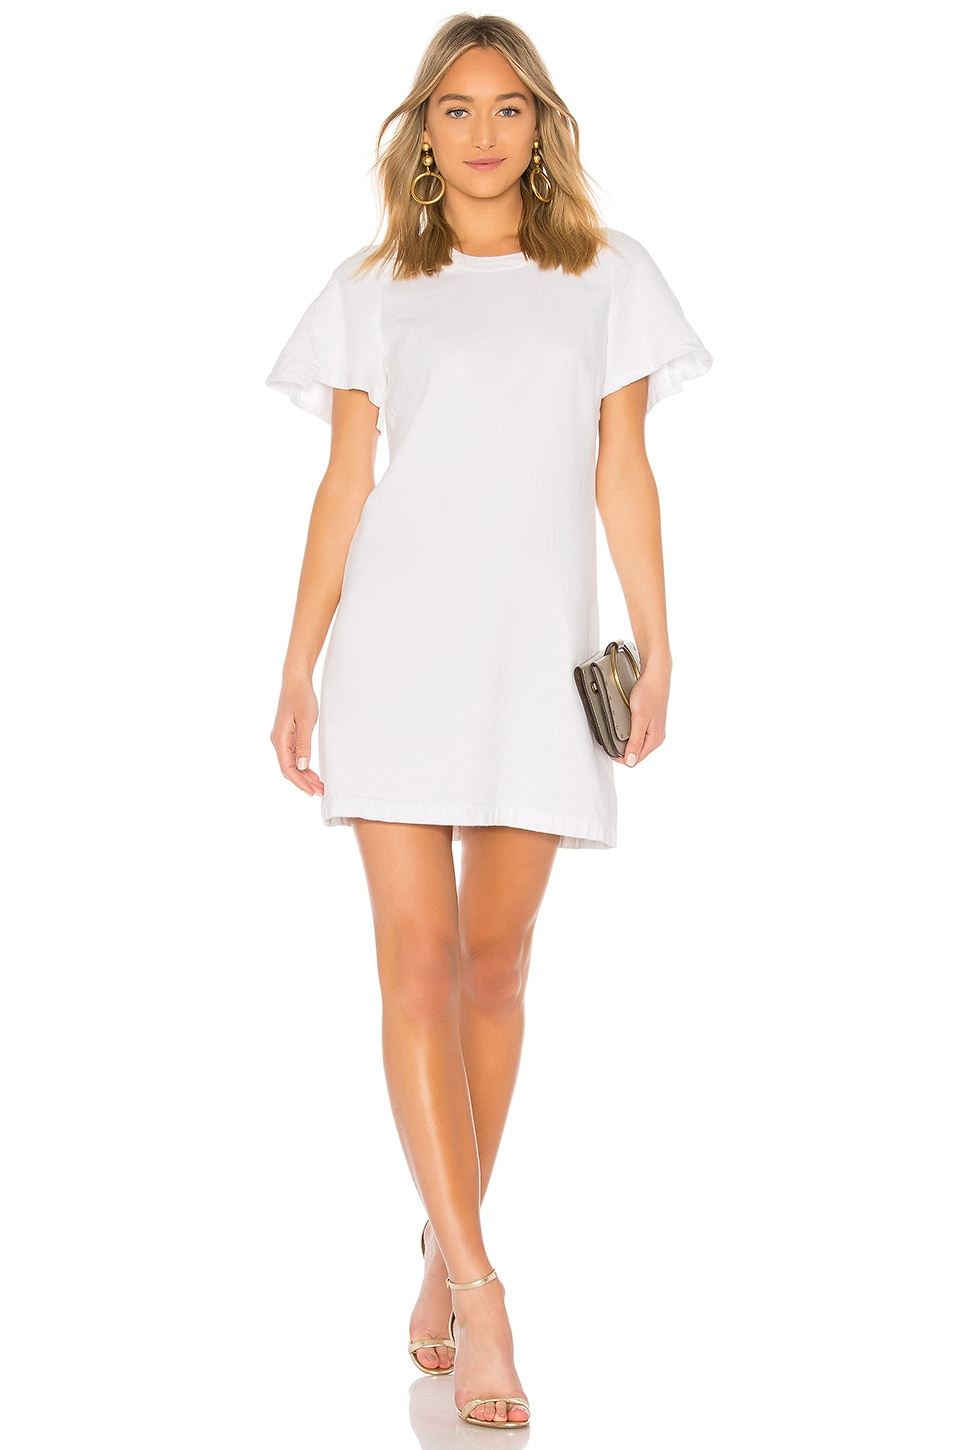 7 For All Mankind Popover Dress in White Fashion